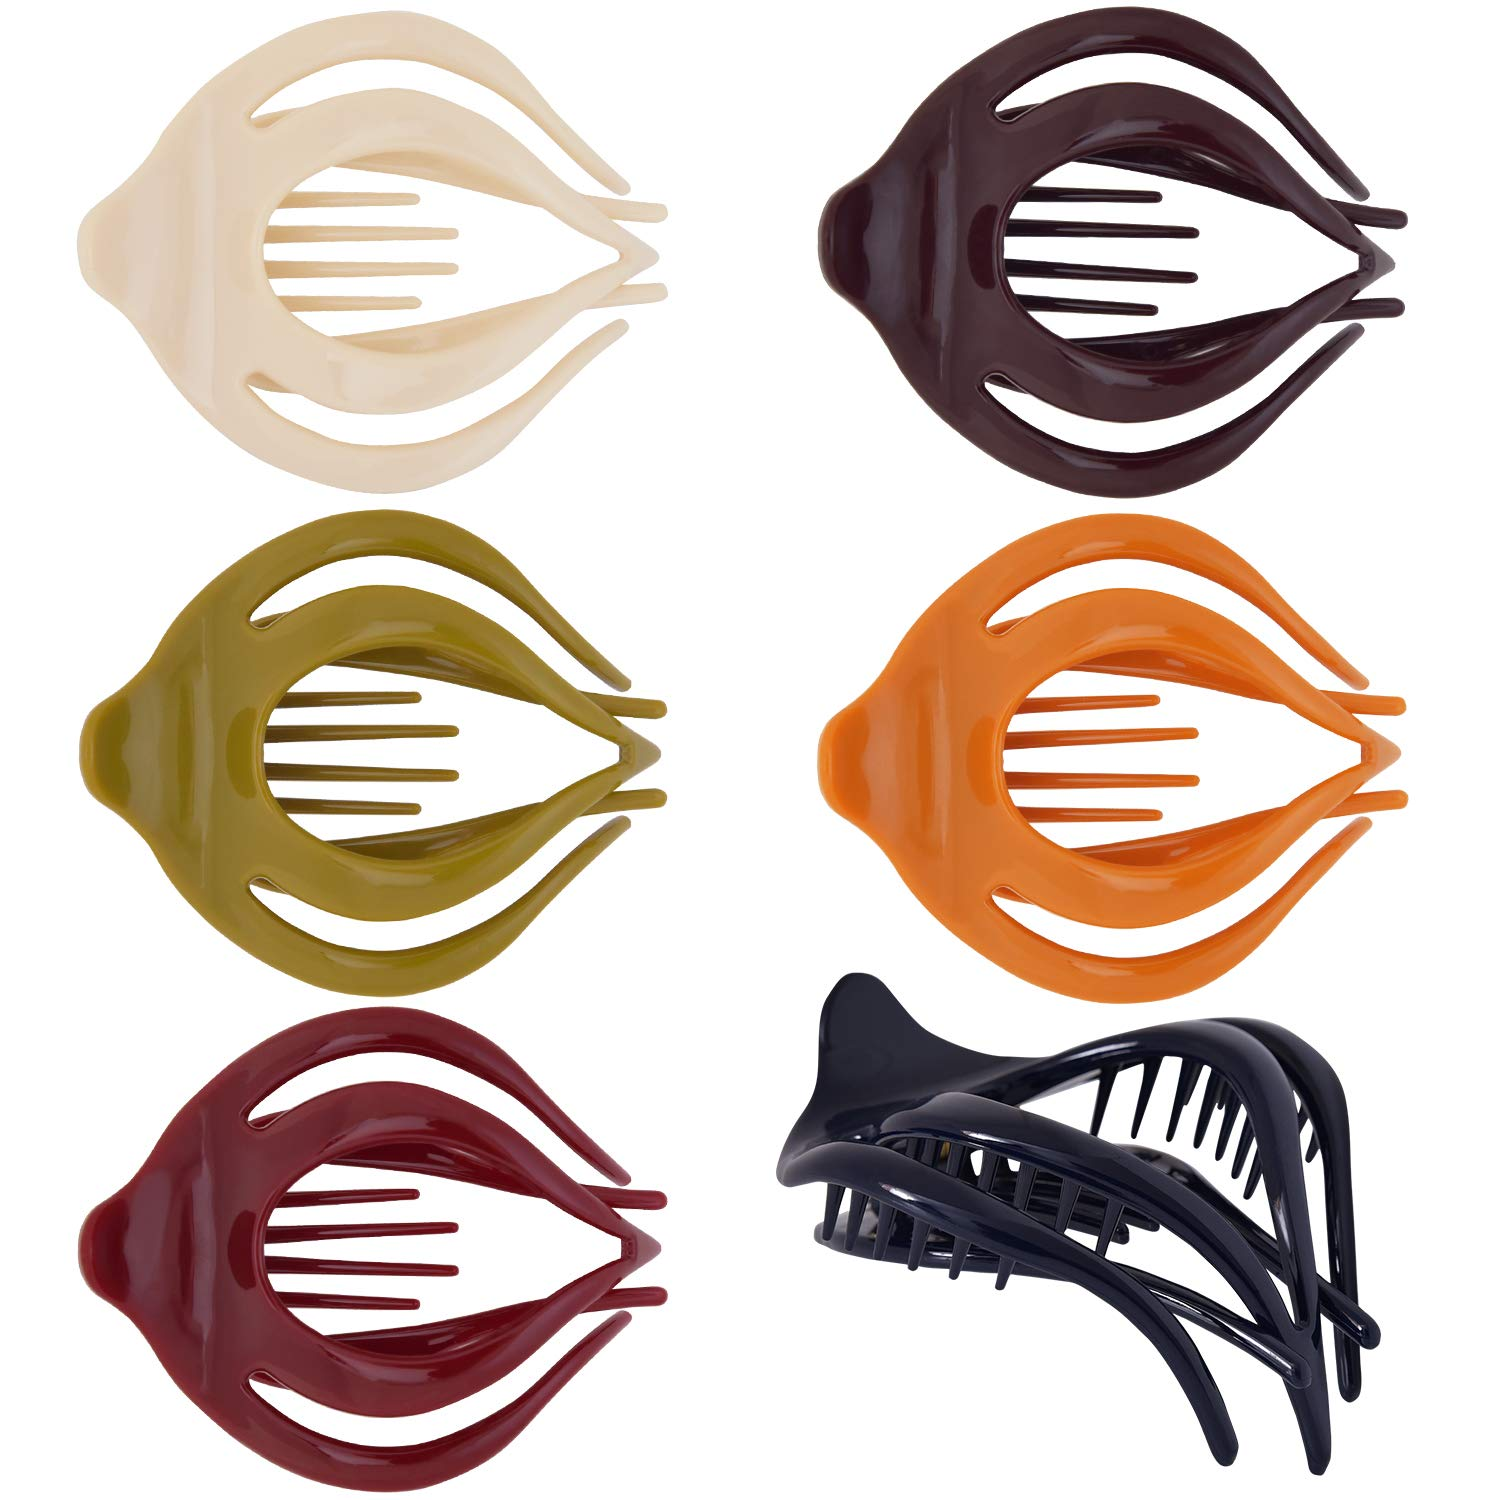 Product RC ROCHE Los Angeles Mall ORNAMENT 6 Pcs Womens Cute Clutcher Hollow Curvaceous B